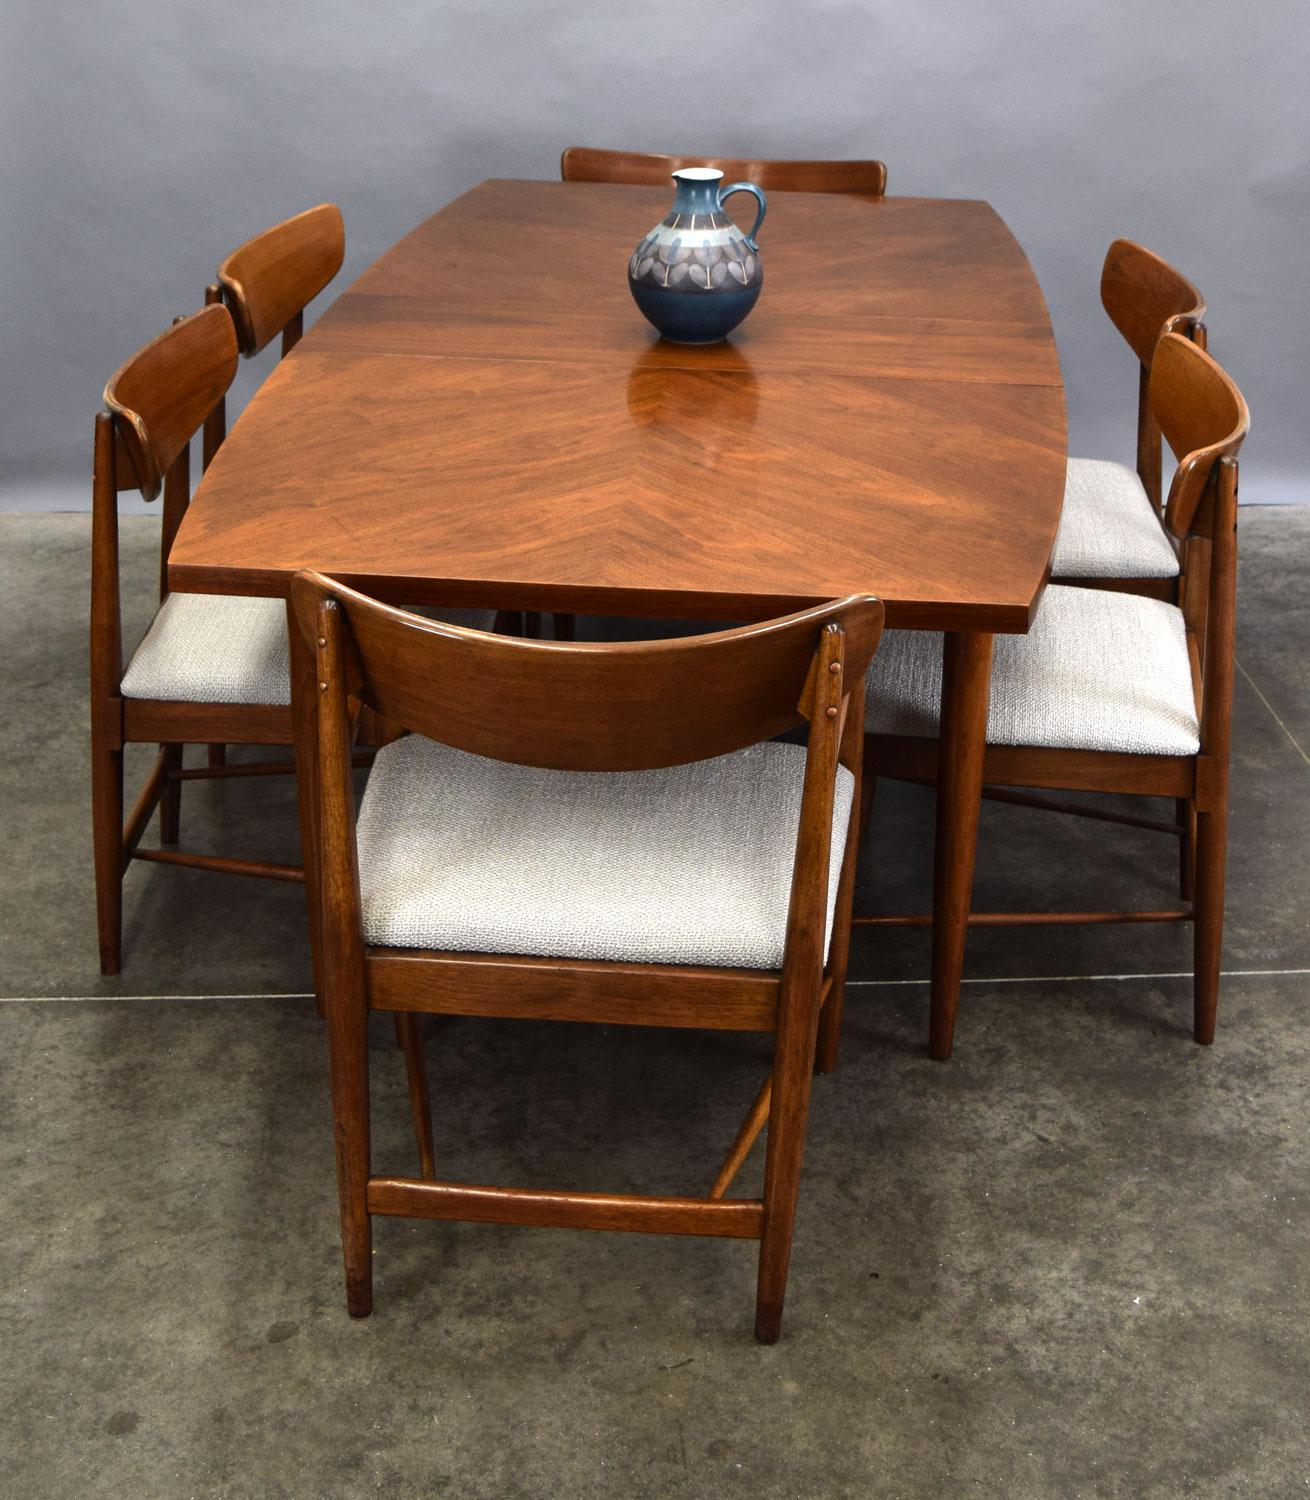 Marvelous American Of Martinsville U0027Daniau0027 Walnut Dining Table   With Leaves   Image  ...